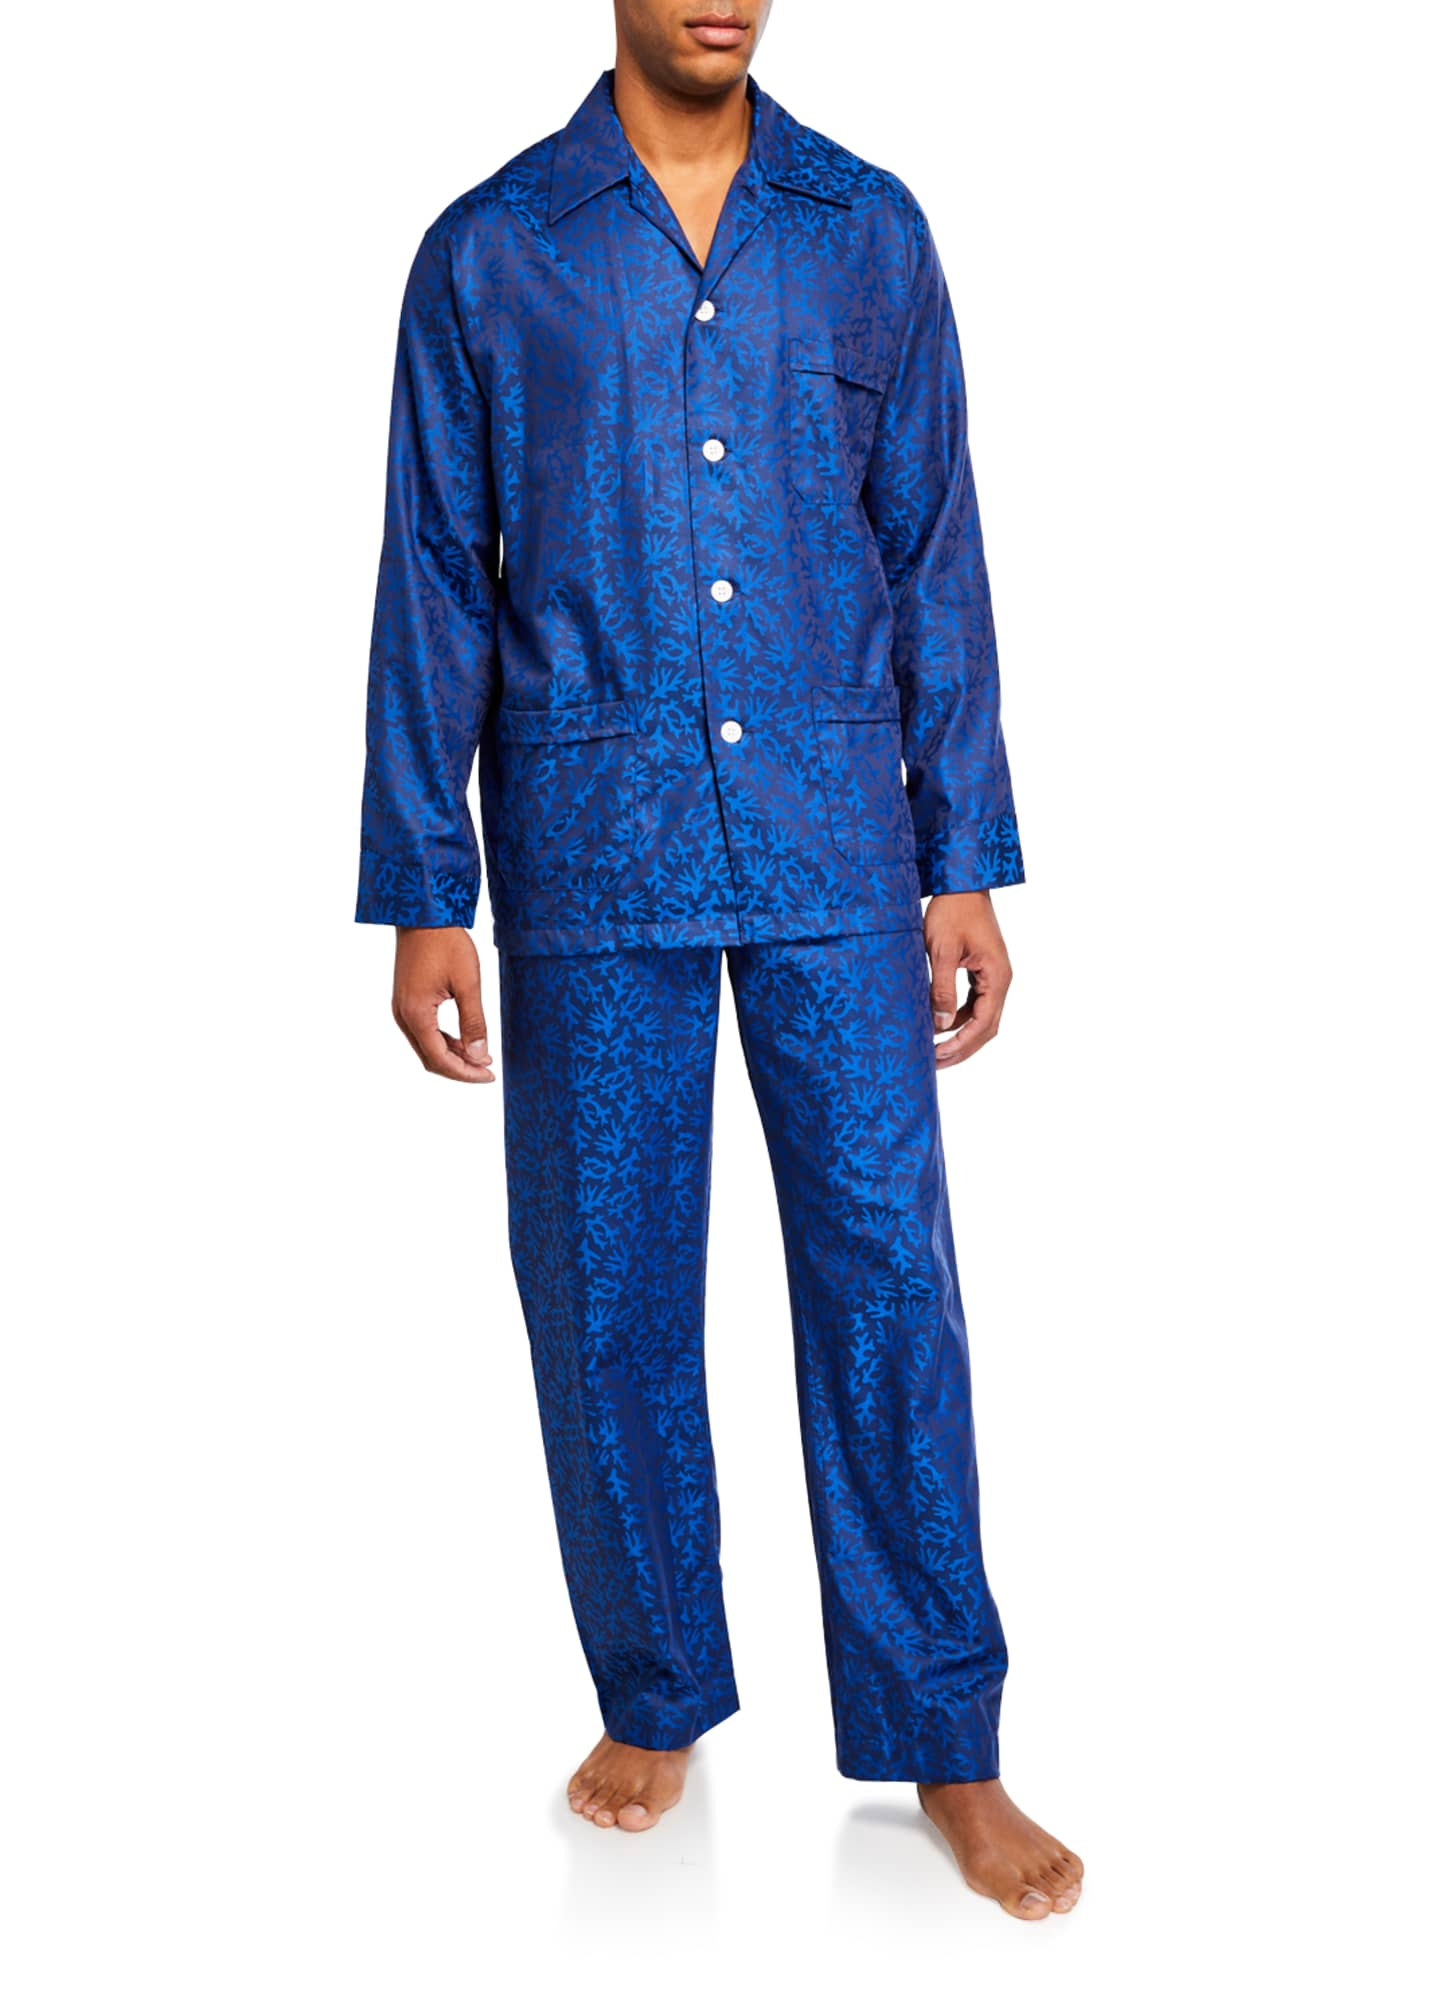 Derek Rose Men's Paris 16 Classic Pajama Set